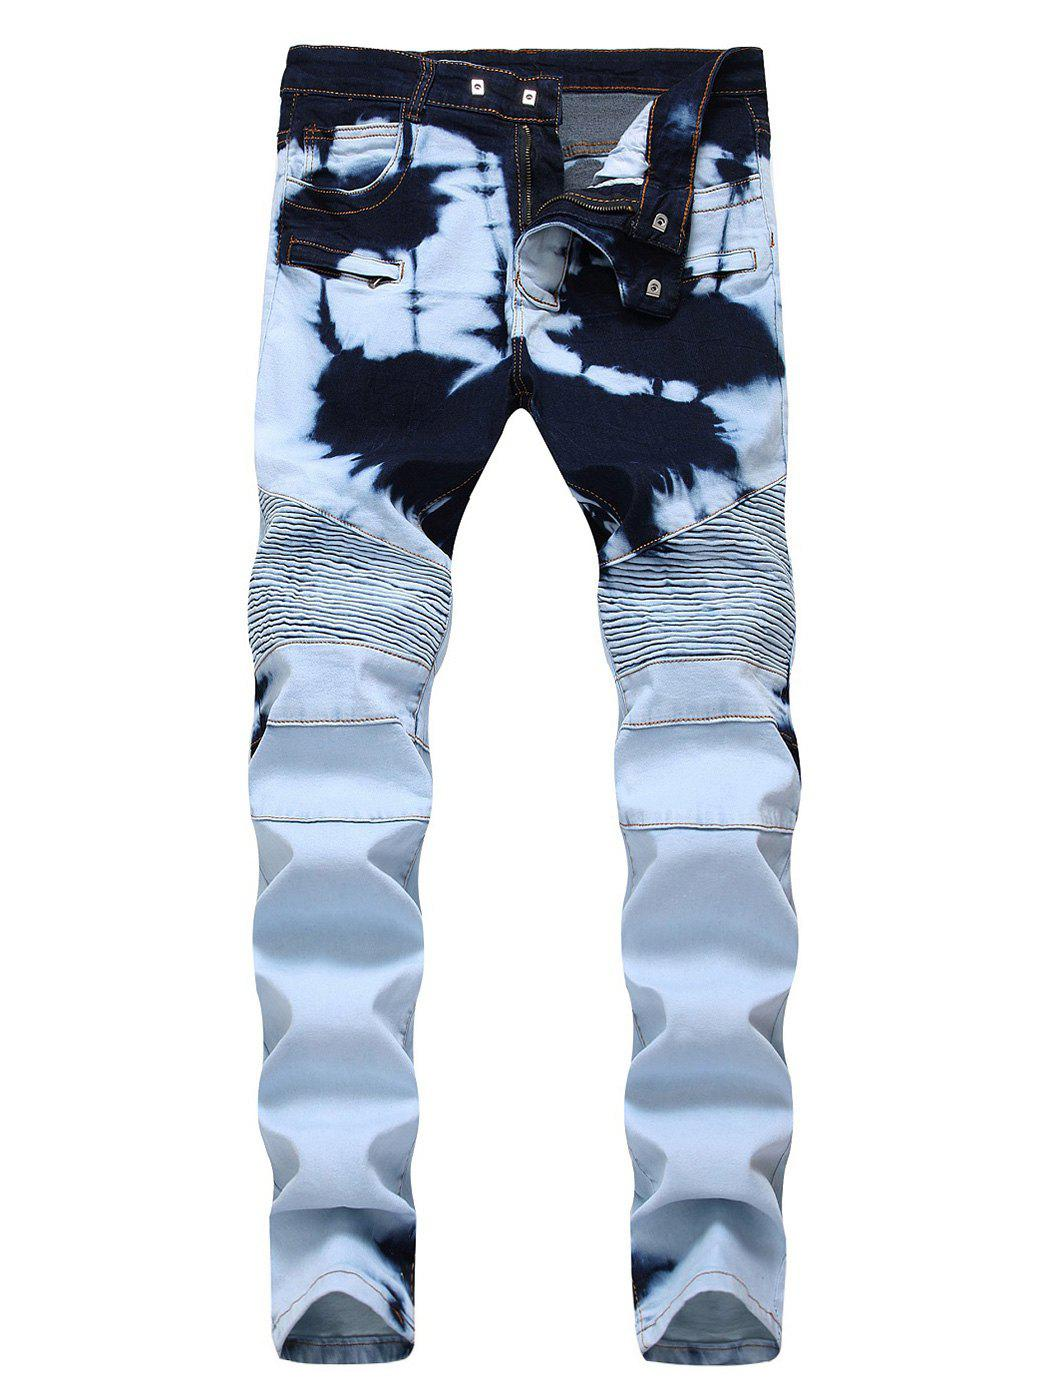 Affordable Zip Embellished Tie Dye Biker Jeans